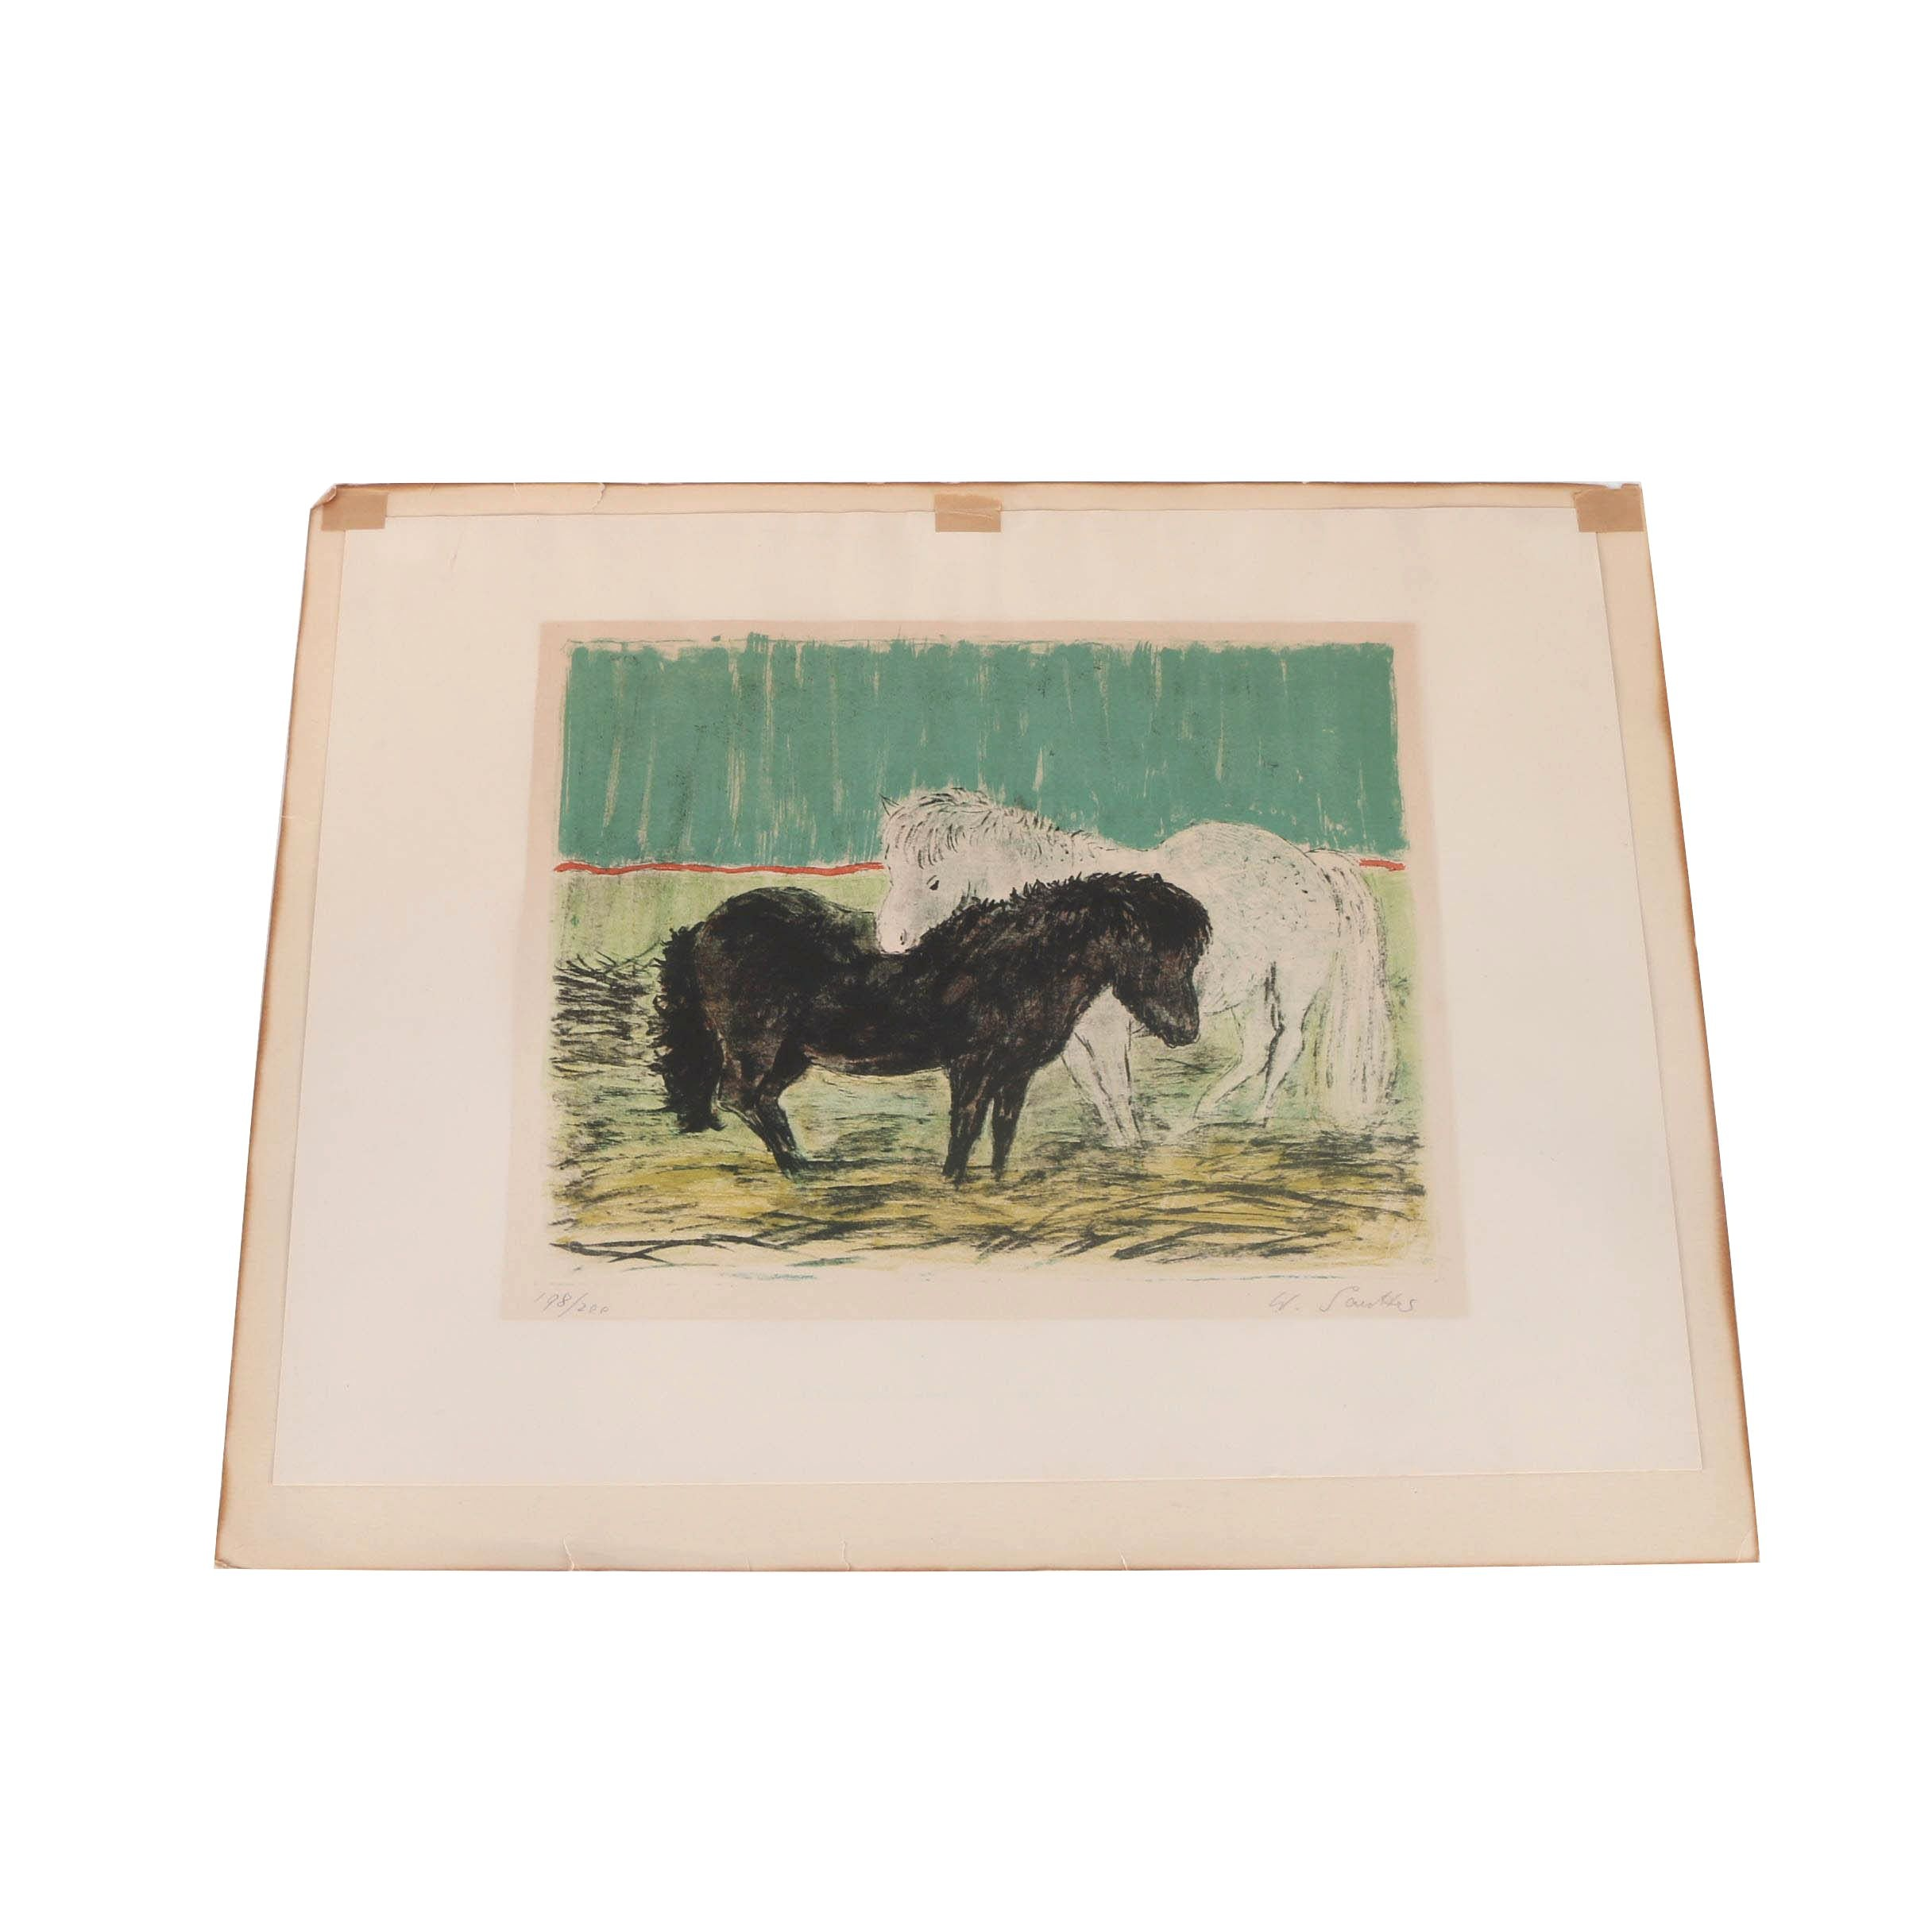 Limited Edition Color Lithograph of Ponies